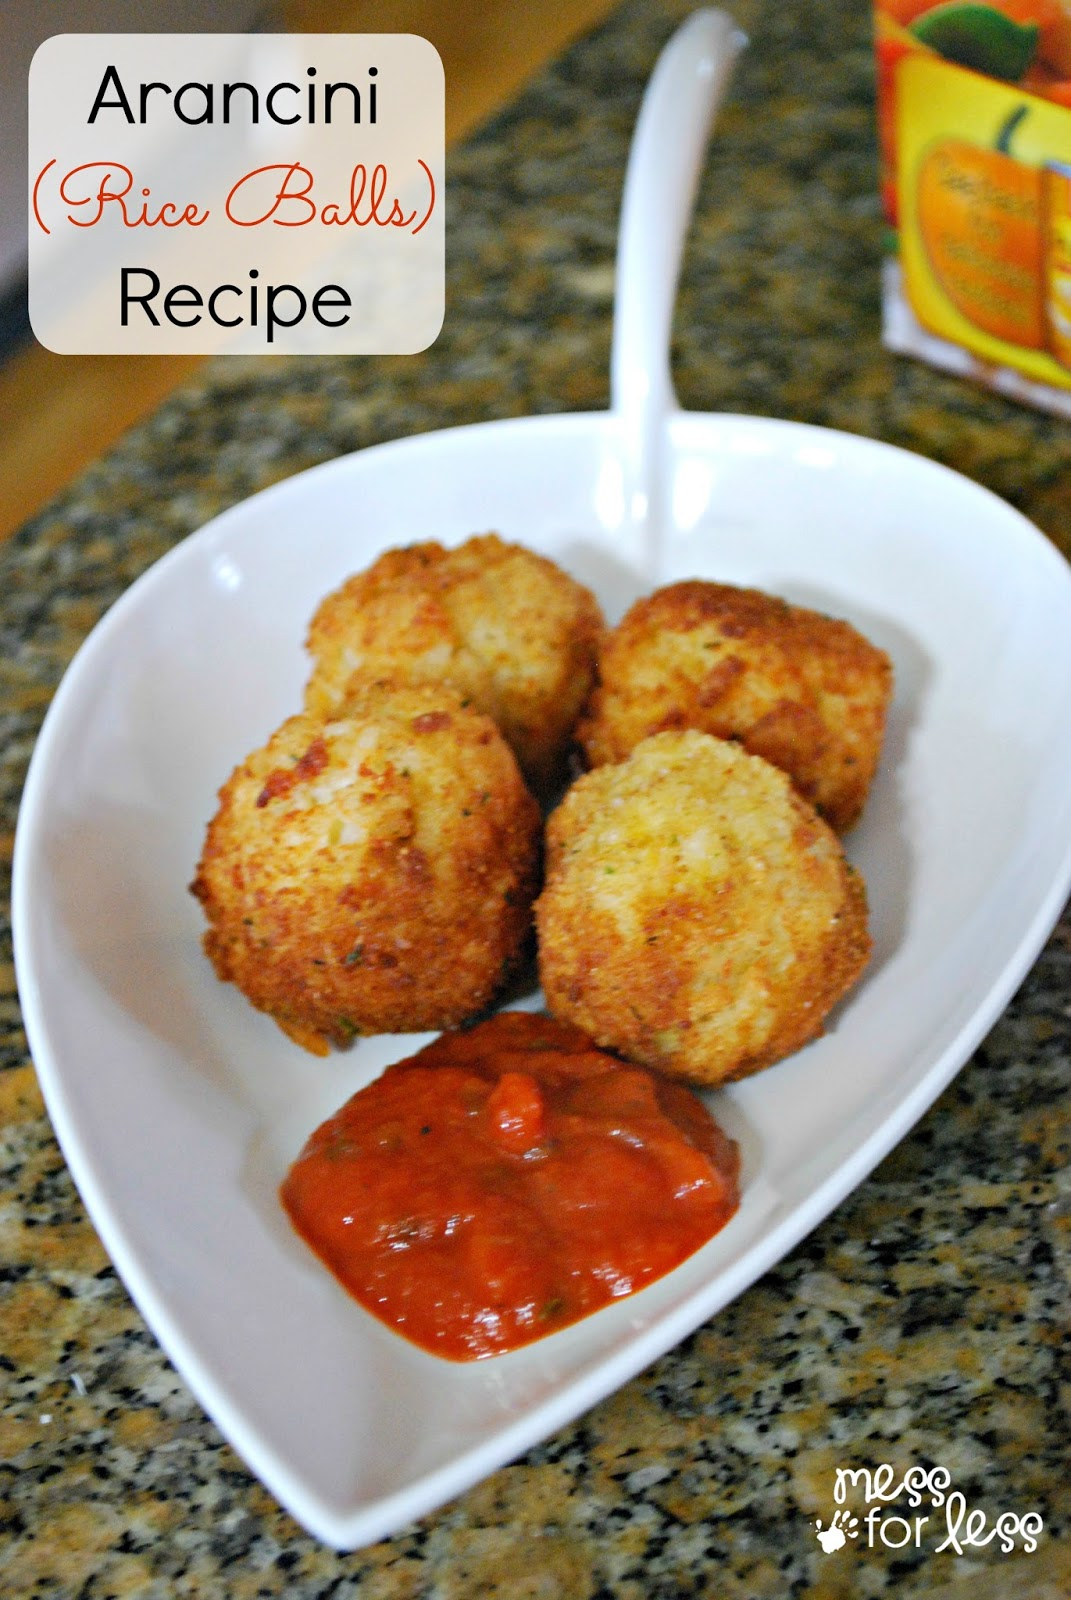 Arancini Recipe - It used to take a lot of work to make rice balls. Minute Rice is a great shortcut to make easy rice balls. #sponsored #MinuteHoliday